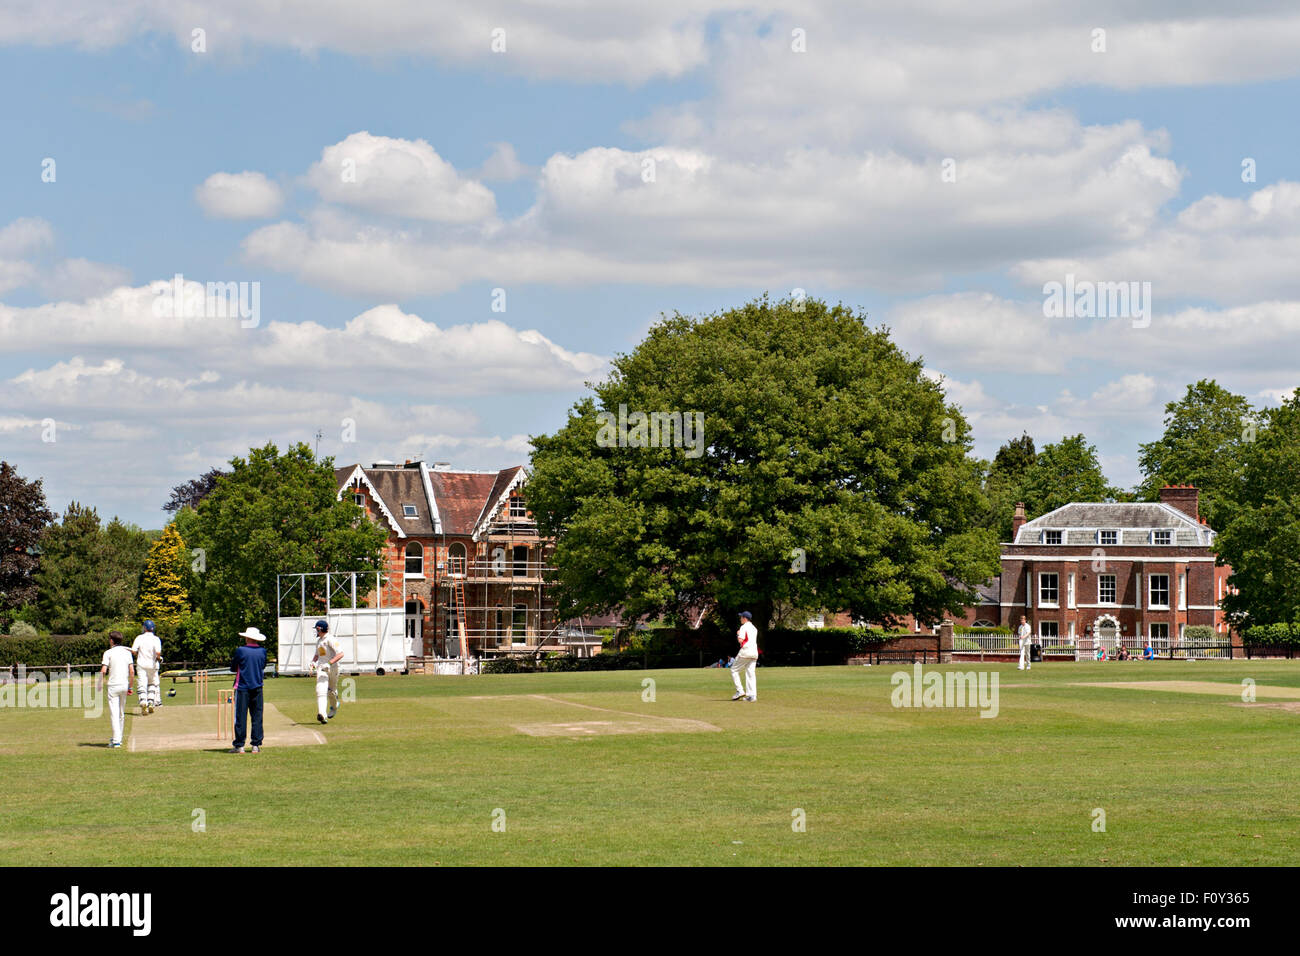 A cricket match in progress at the famous Vine cricket ground in Sevenoaks, Kent, UK Stock Photo